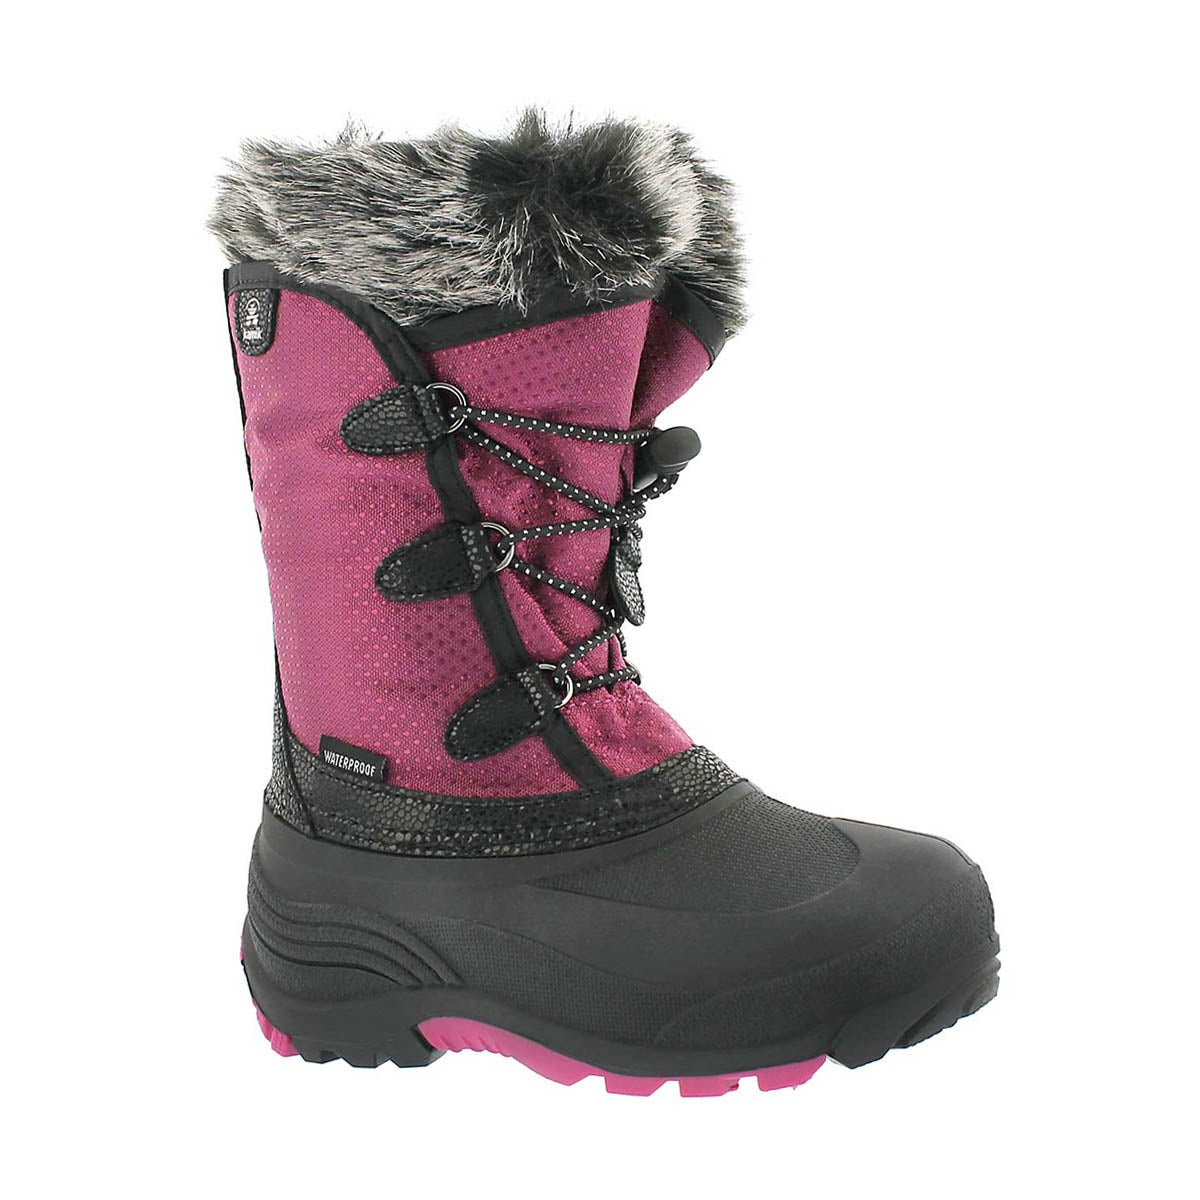 Girls' POWDERY plum waterpoof winter boots